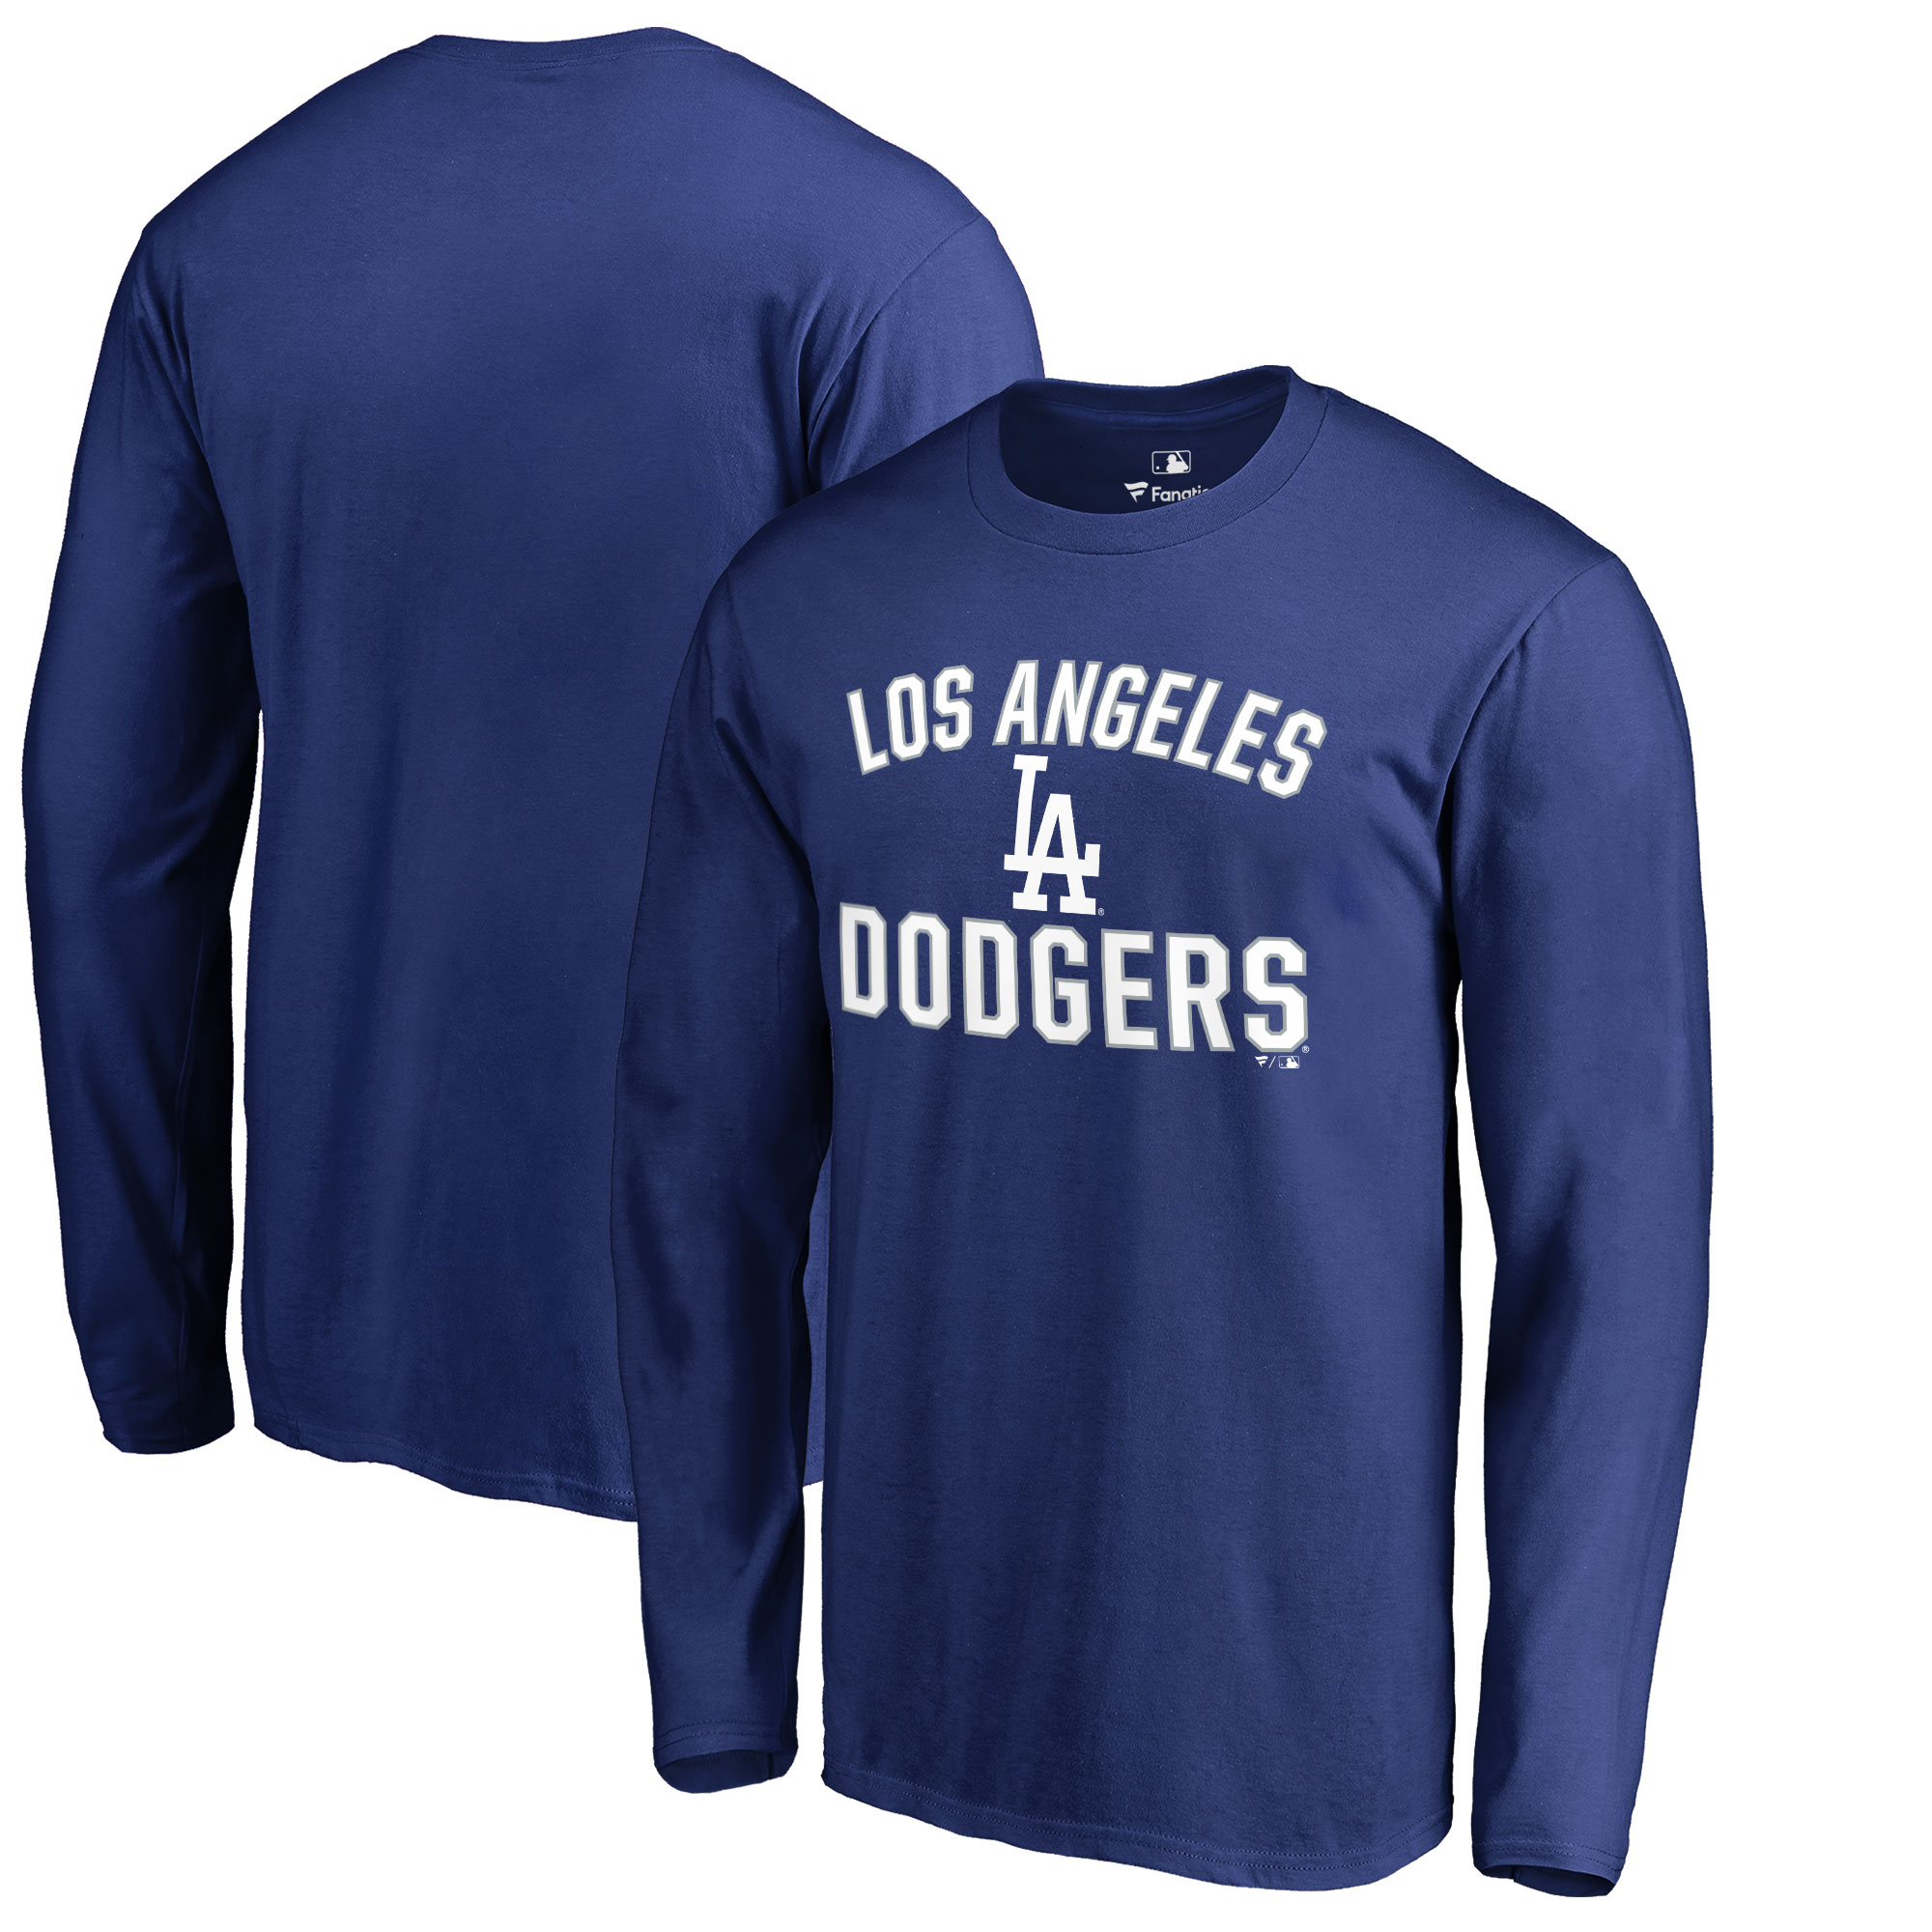 Los Angeles Dodgers Victory Arch Long Sleeve T-Shirt - Royal